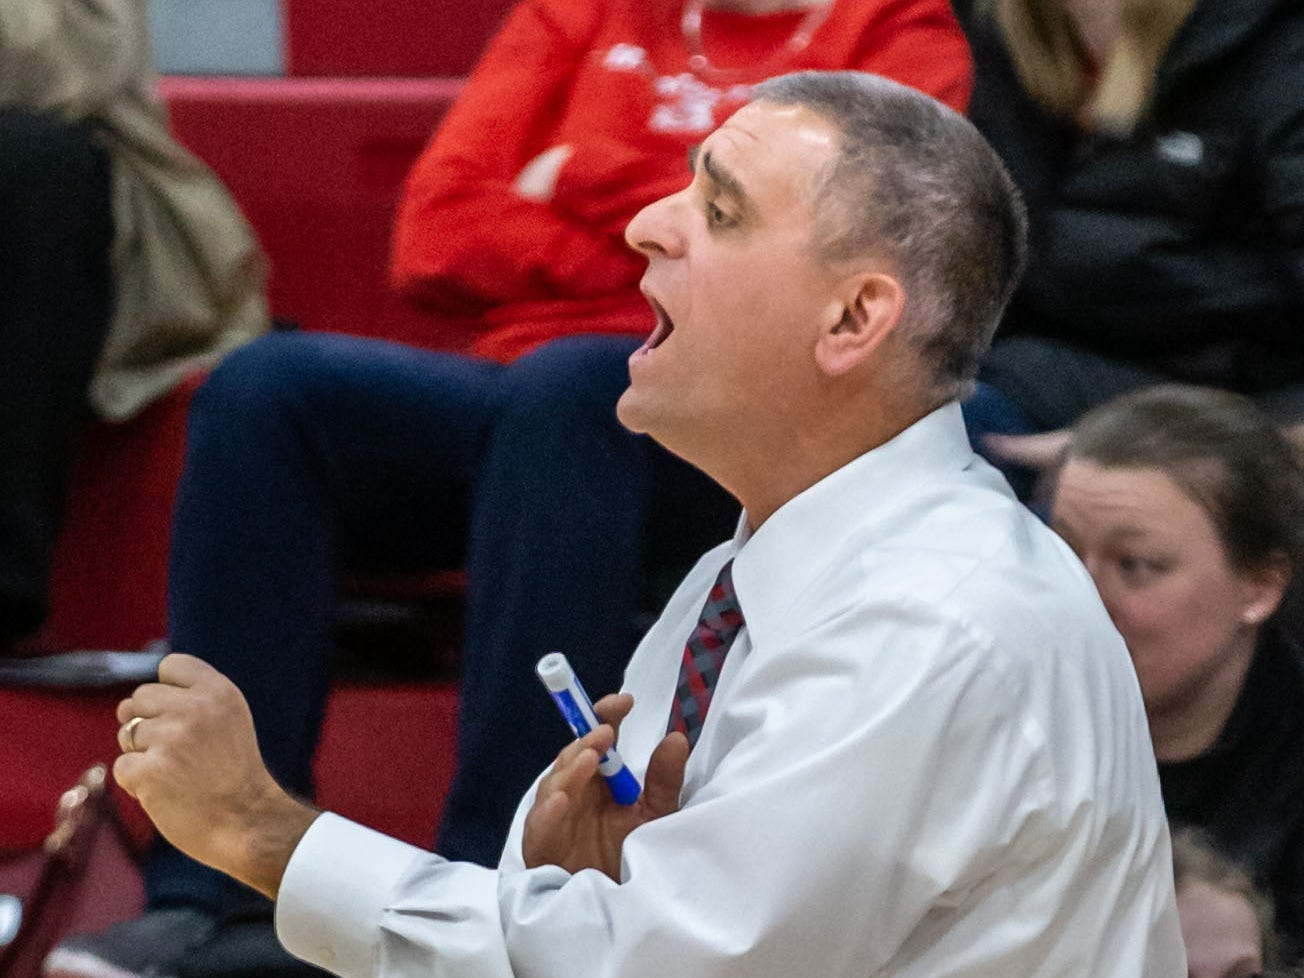 Hamilton head coach Andy Cerroni calls a play during the game at home against Germantown on Thursday, Feb. 14, 2019.